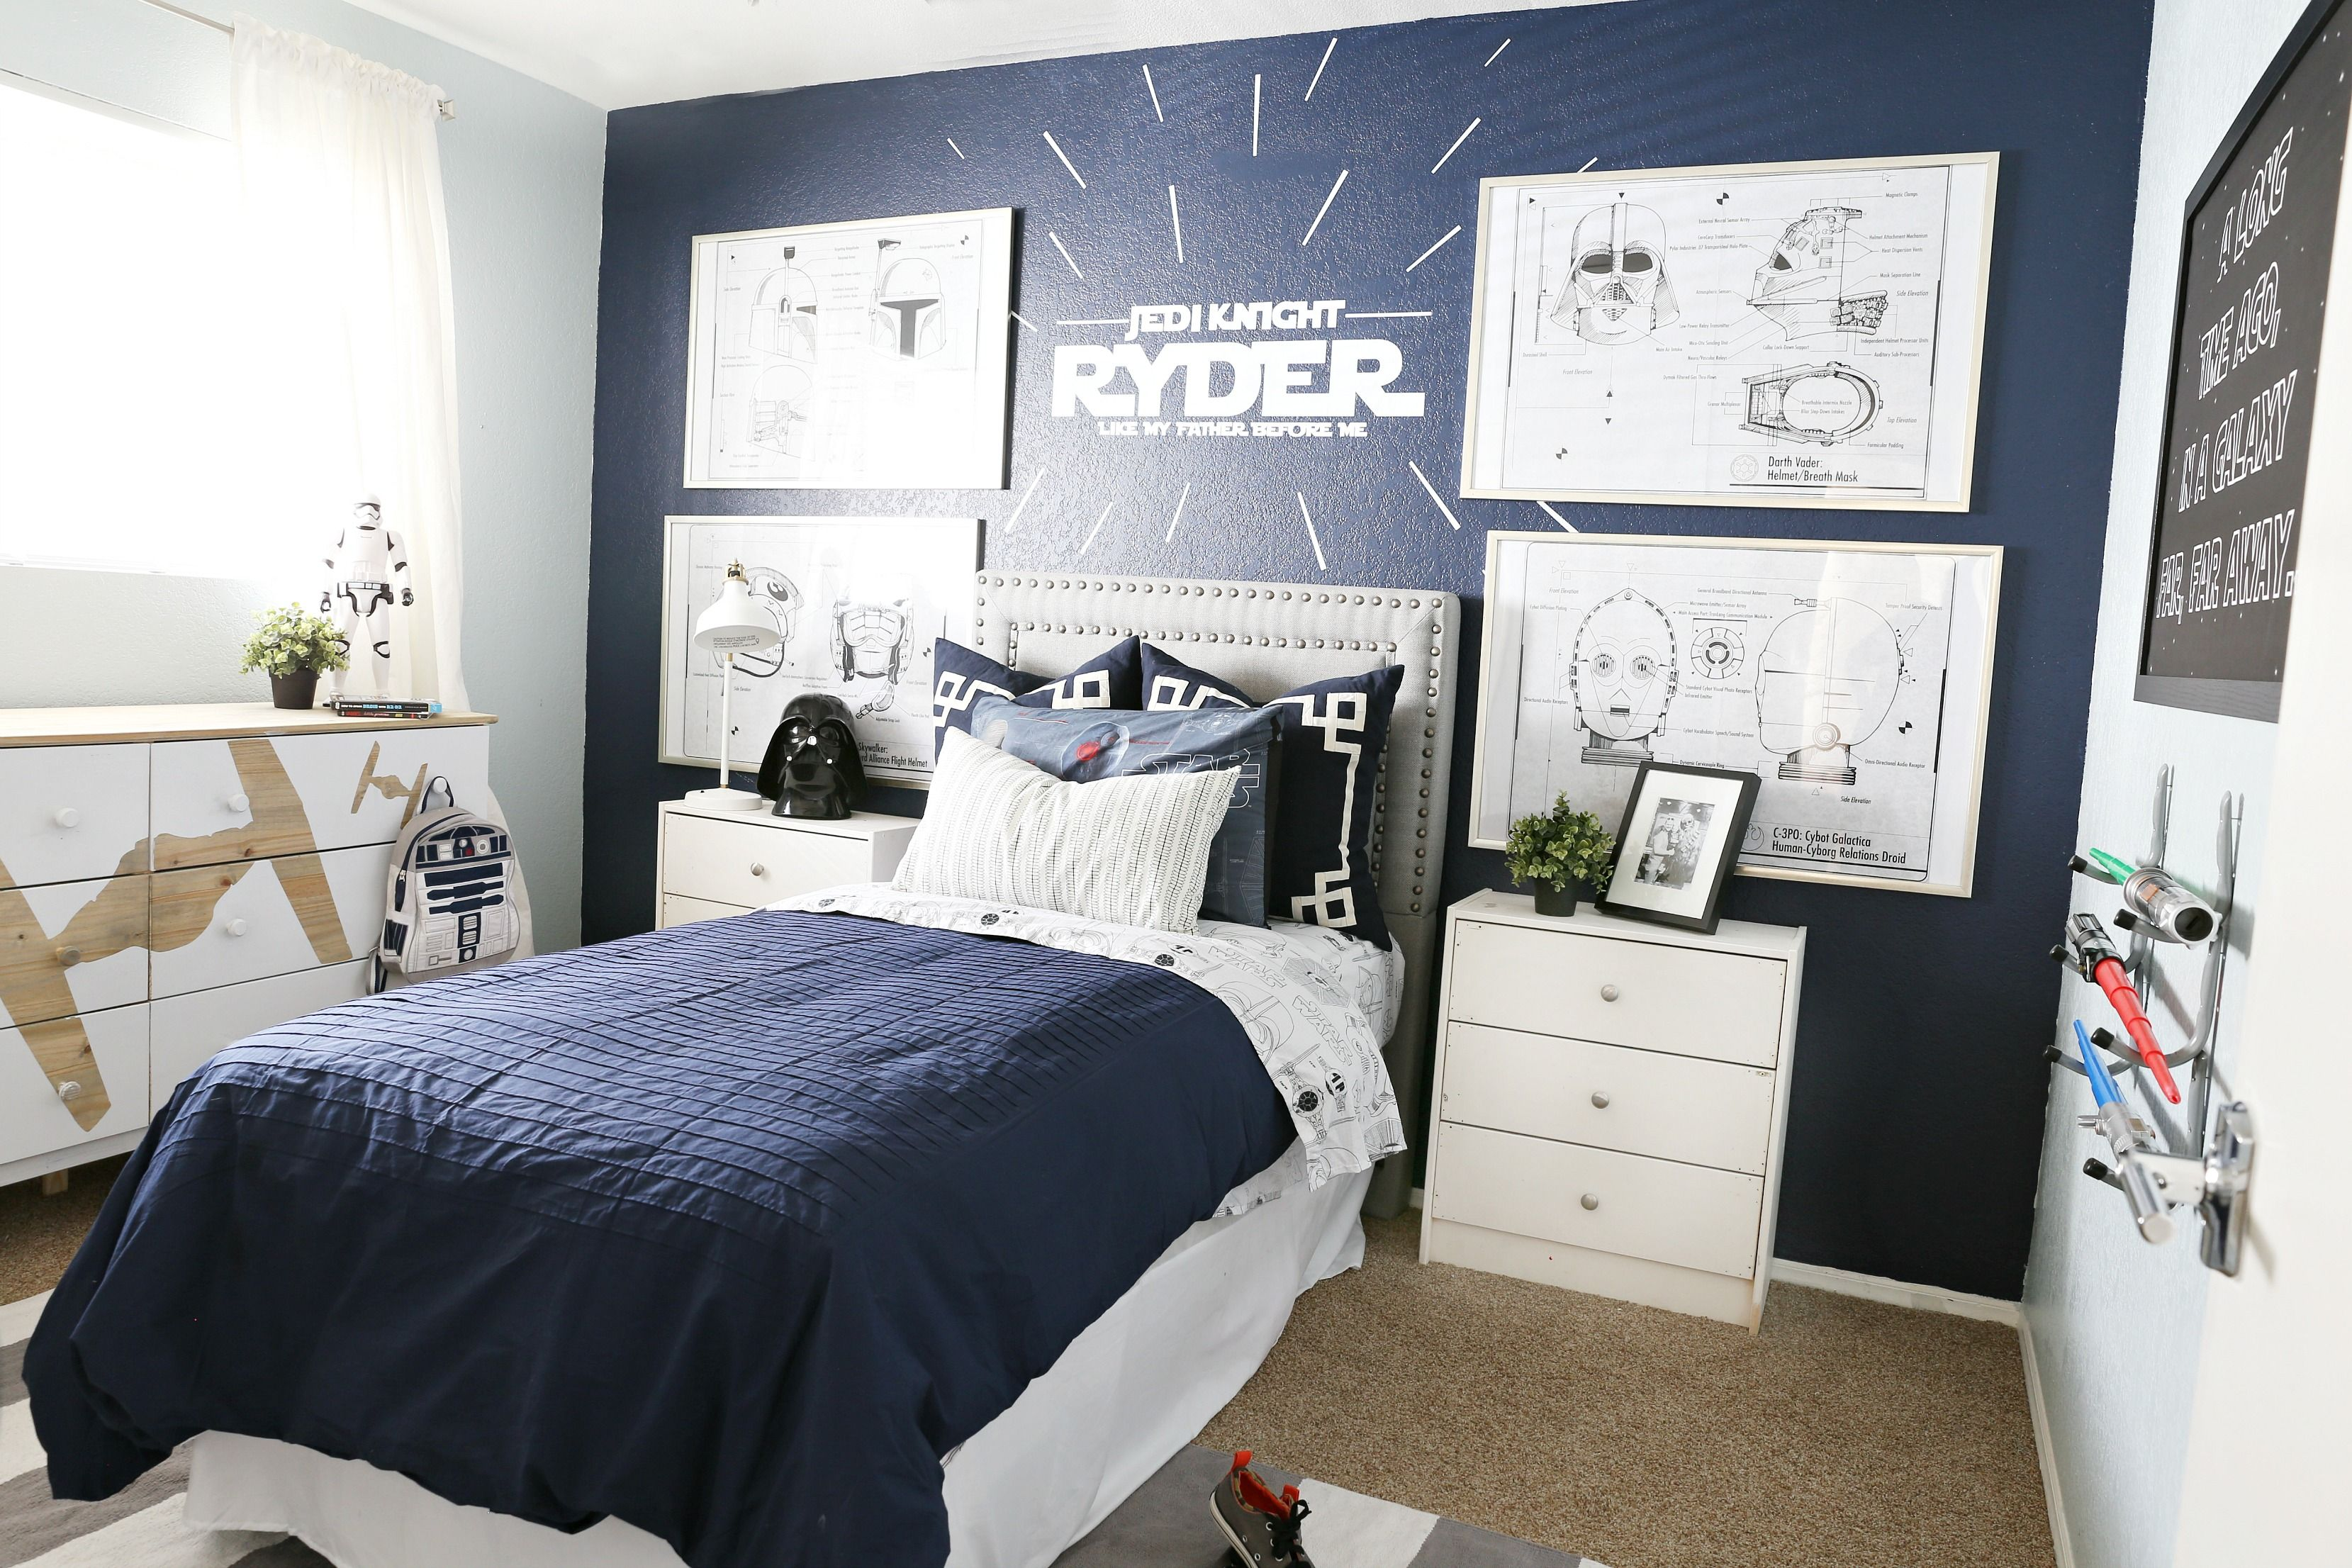 Star Wars Star Wars Kids Bedroom Star Wars Bedroom Creative